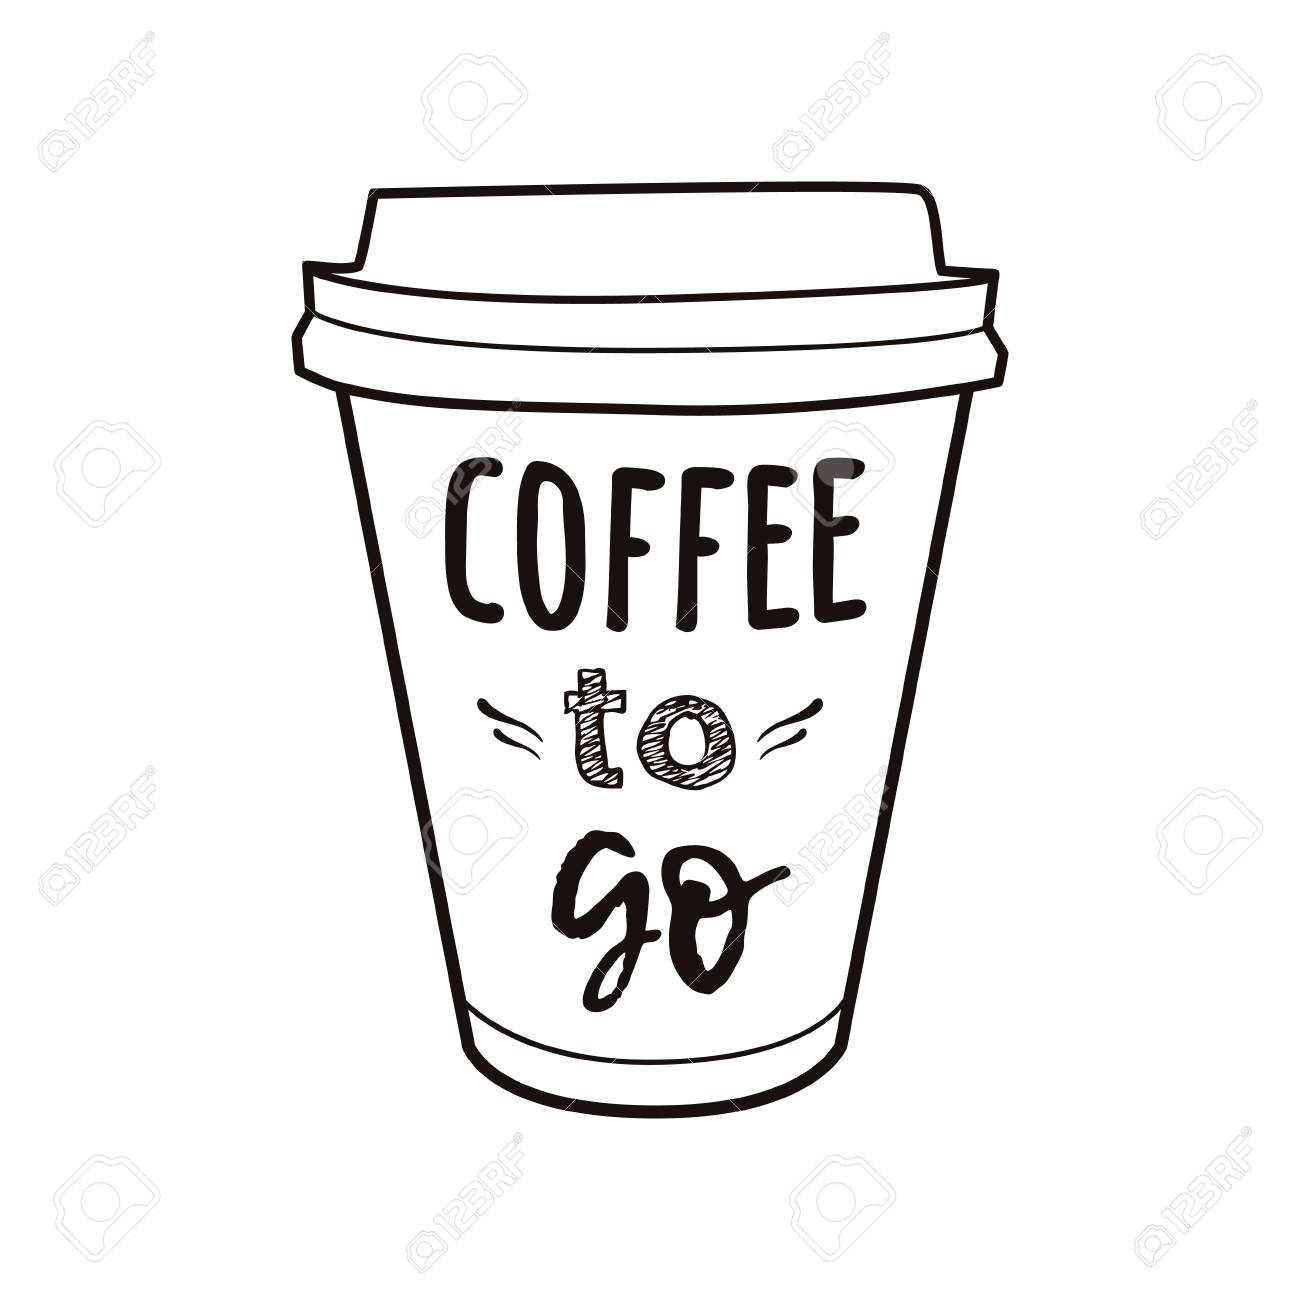 Vector Illustration Of A Take Away Coffee Cup With Phrase Coffee To Go Vintage Drawing For Drink And Beverage Menu Or Cafe Design Royalty Free Cliparts Vectors And Stock Illustration Image 104016525